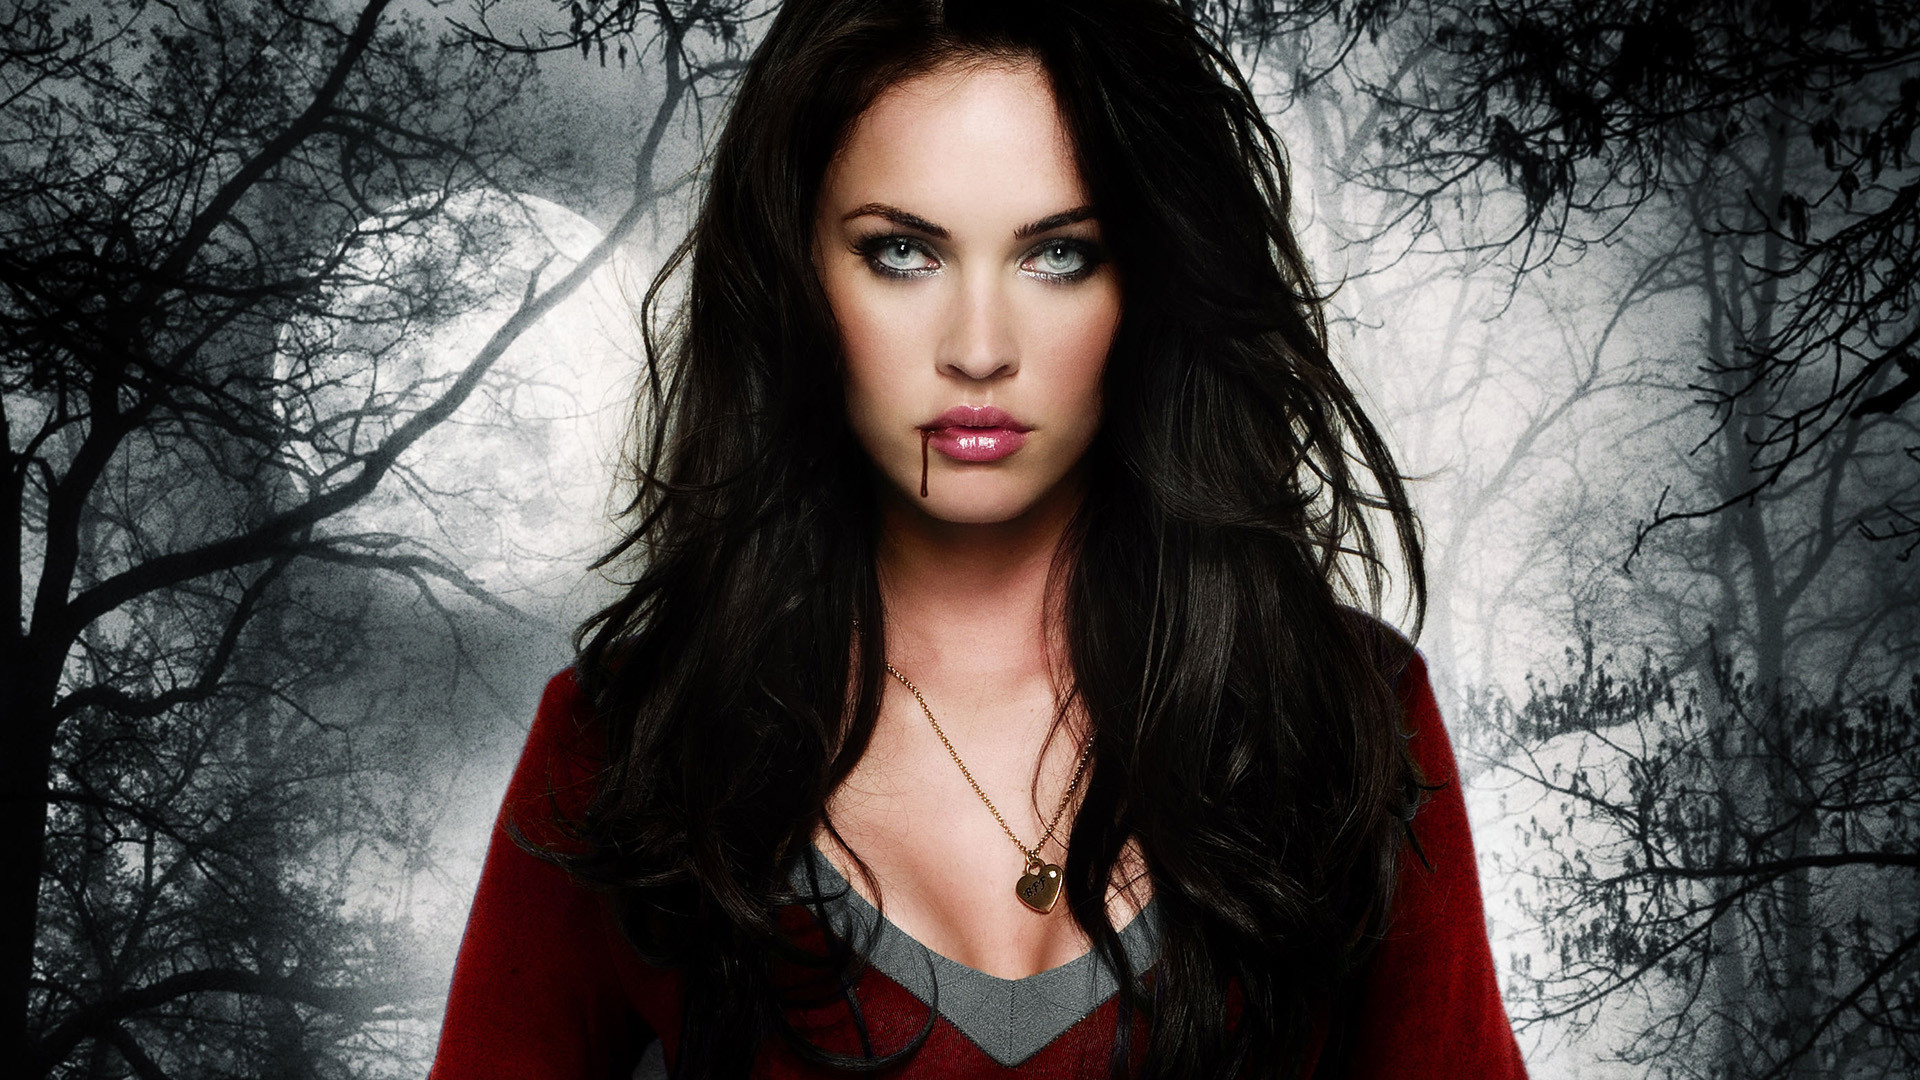 Megan Fox HD Wallpapers